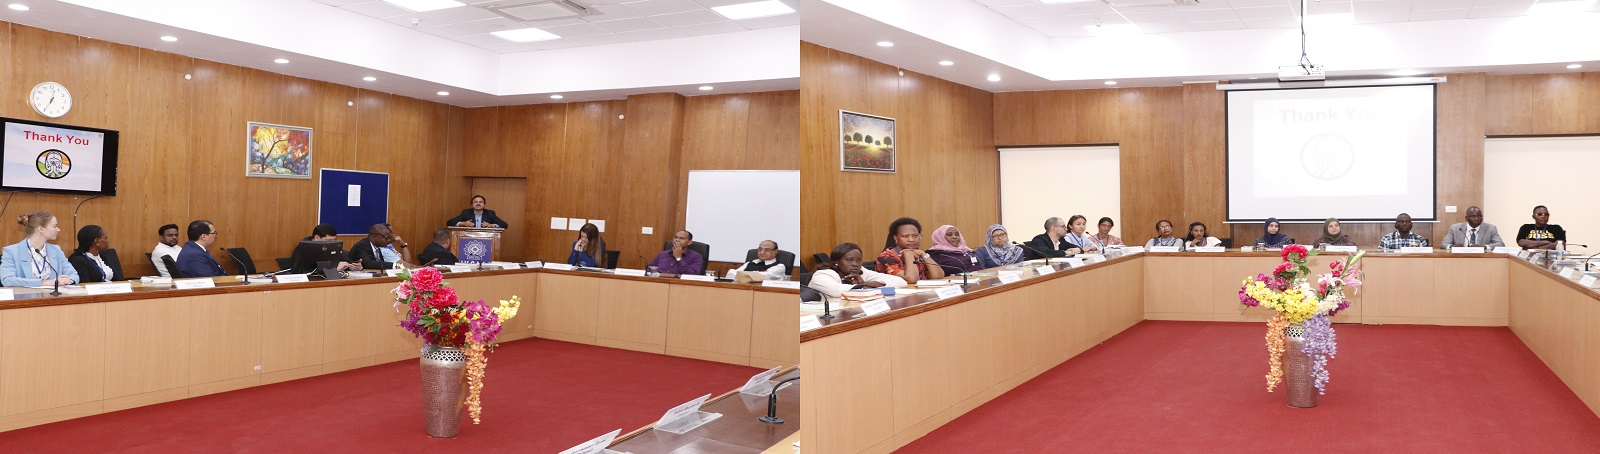 International Training Programme on 'Enhancing Leadership Skills' as part of ITEC of the Ministry of External Affairs  is being organized by VVGNLI from October 07-25, 2019. The programme was inaugurated on 7th October 2019. The programme is being attende